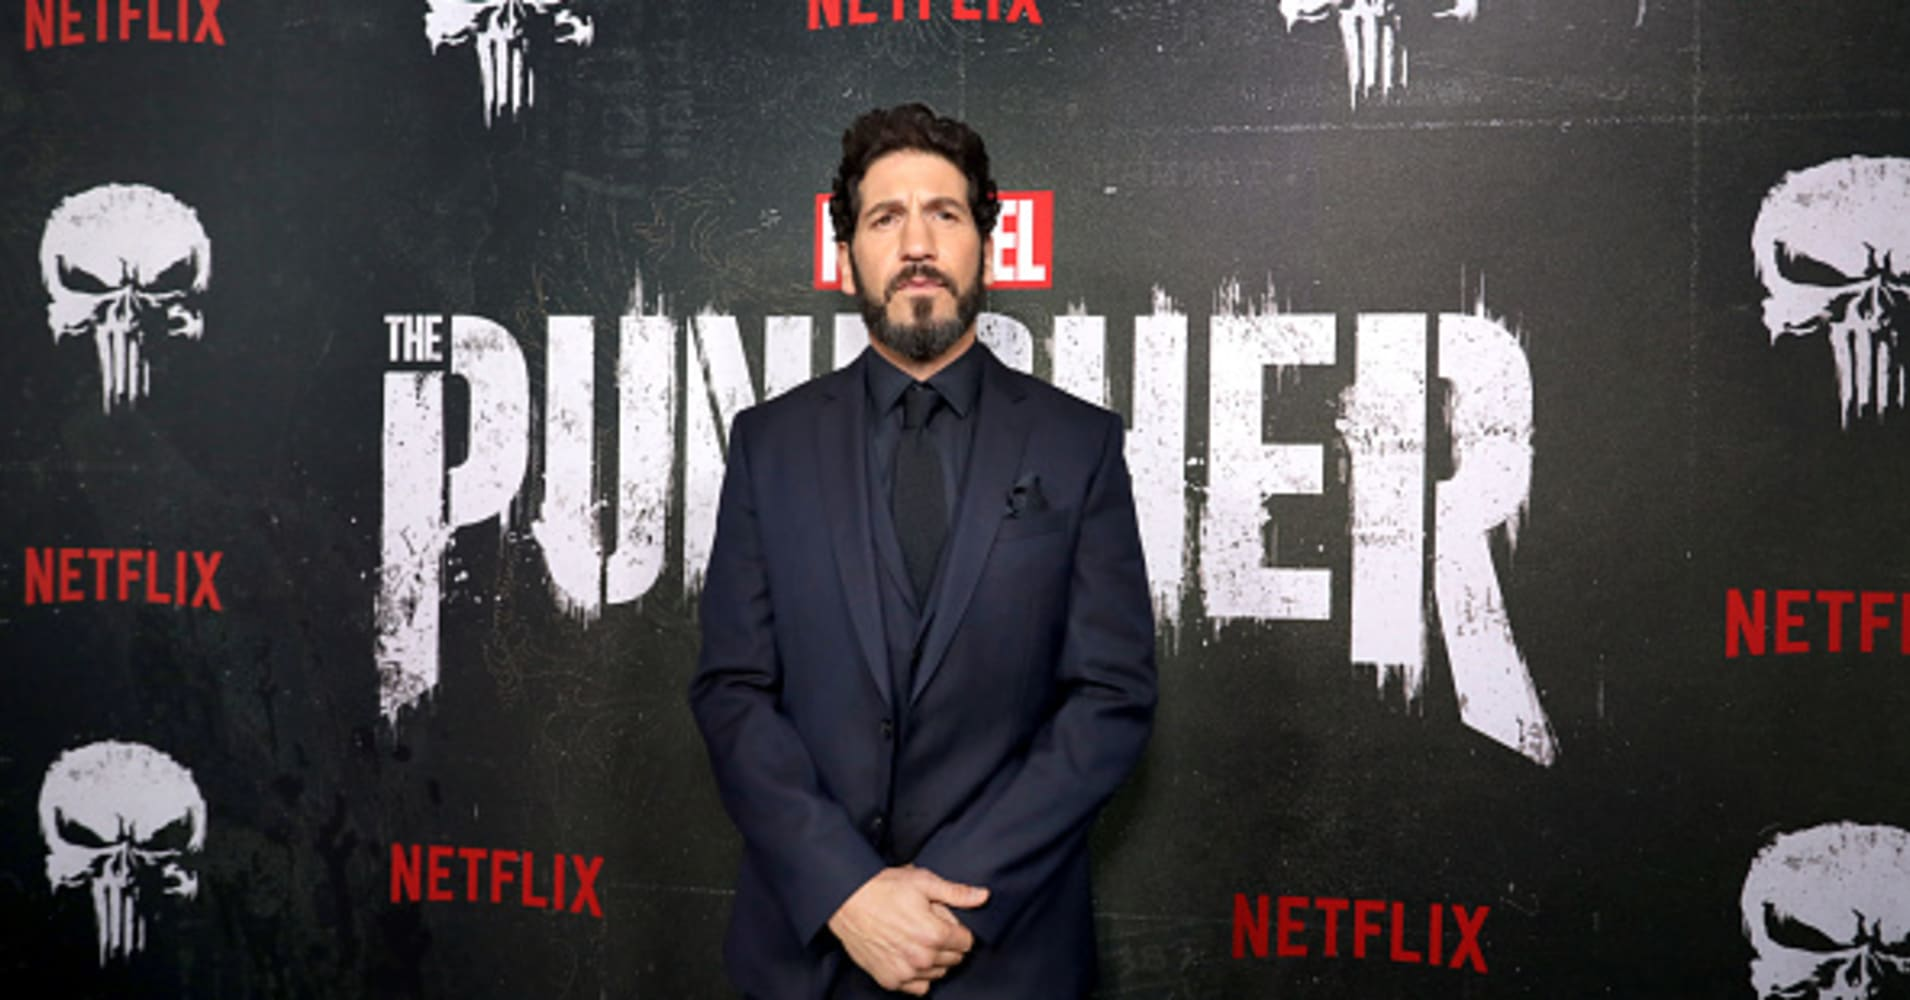 Netflix bids adieu to The Punisher, Jessica Jones and licensing superhero projects from Marvel